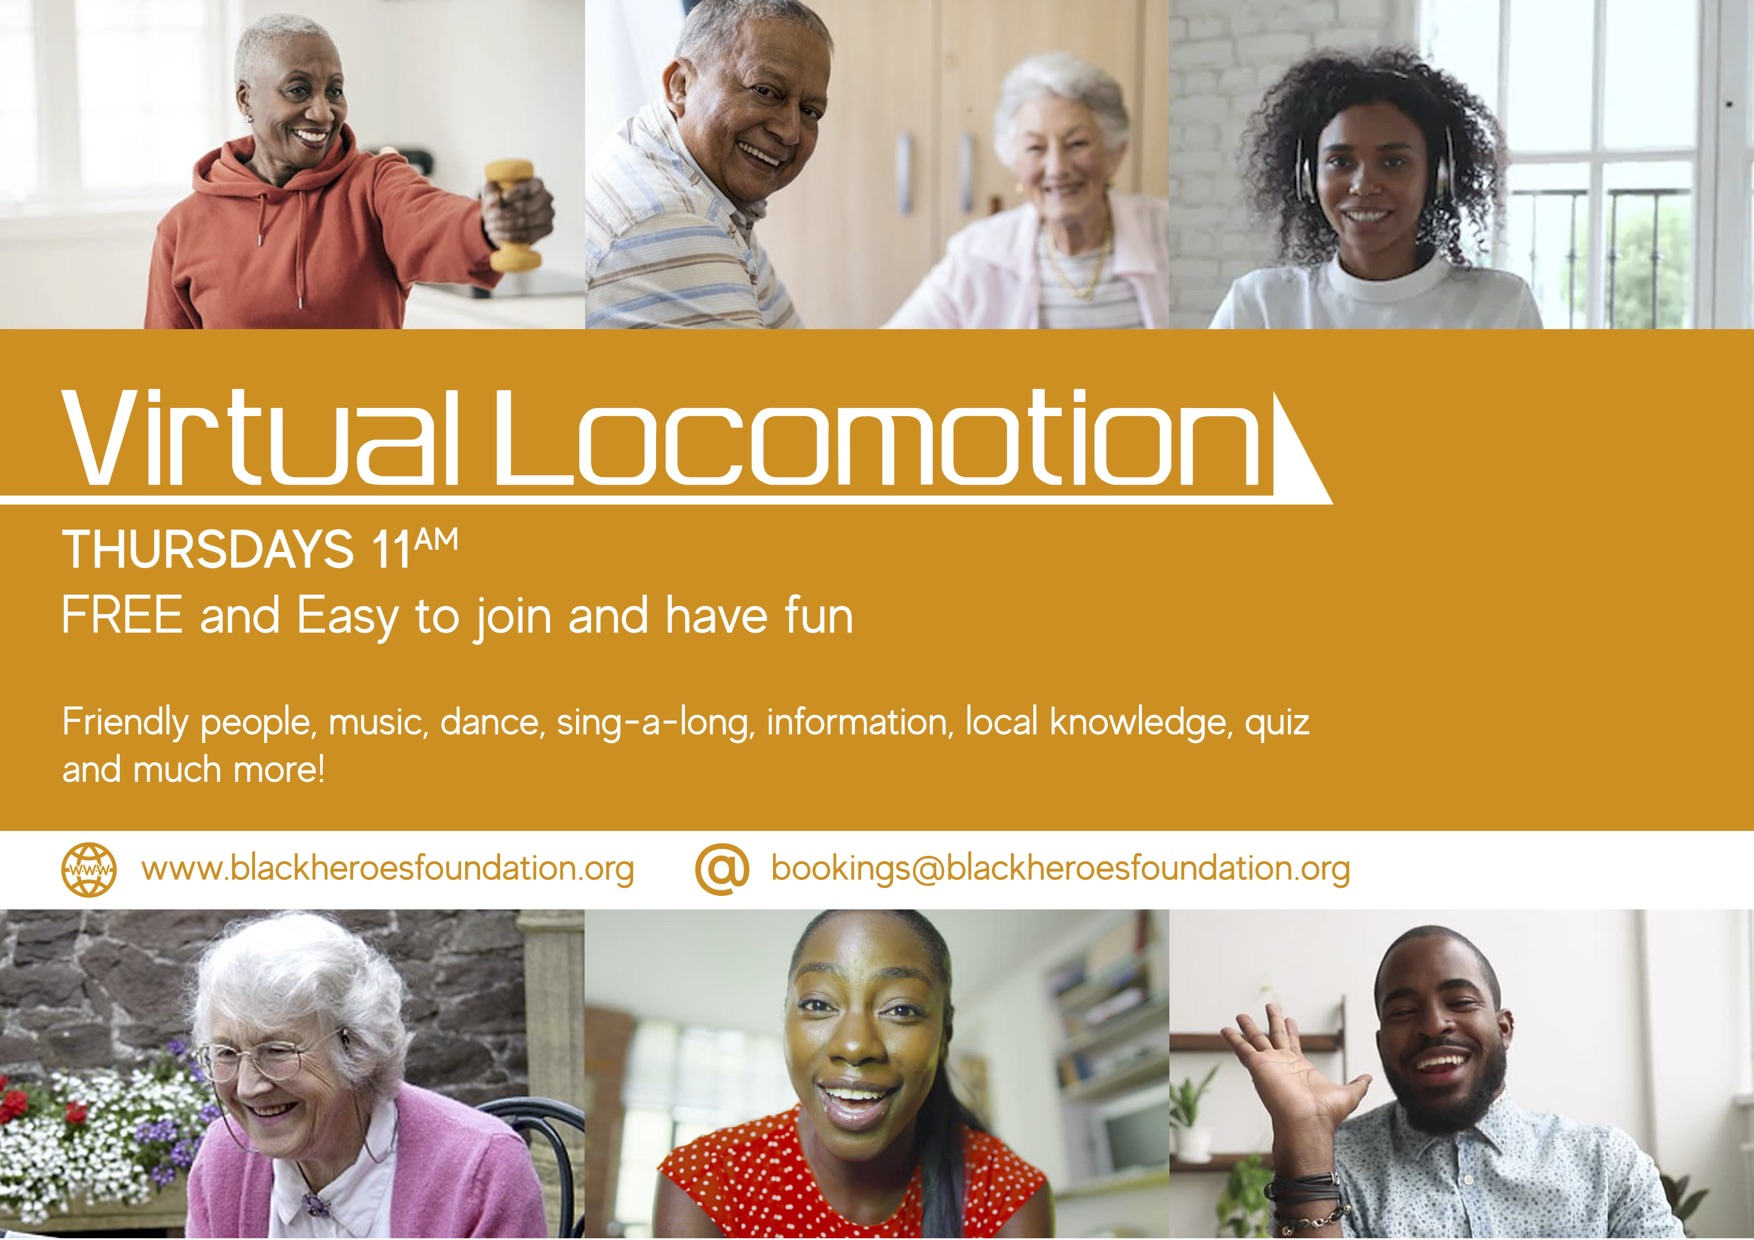 The Virtual Locomotion Weekly Event